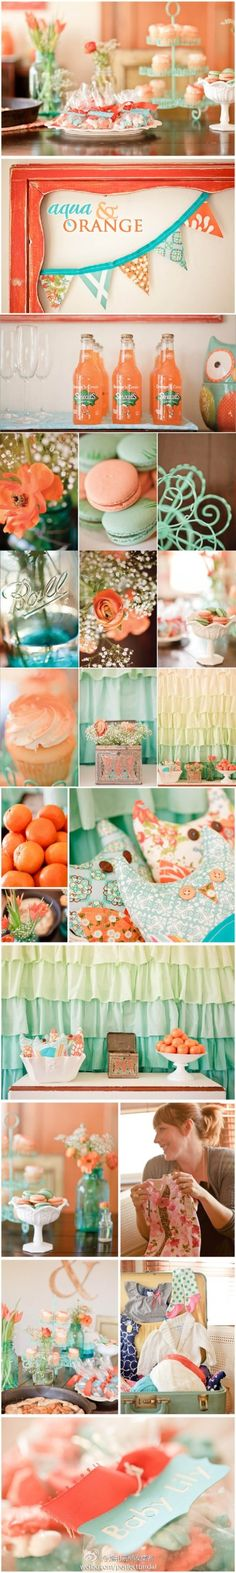 Aqua & Orange inspiration - cute alternative for yellow/green for showers w/o knowing sex of baby :)